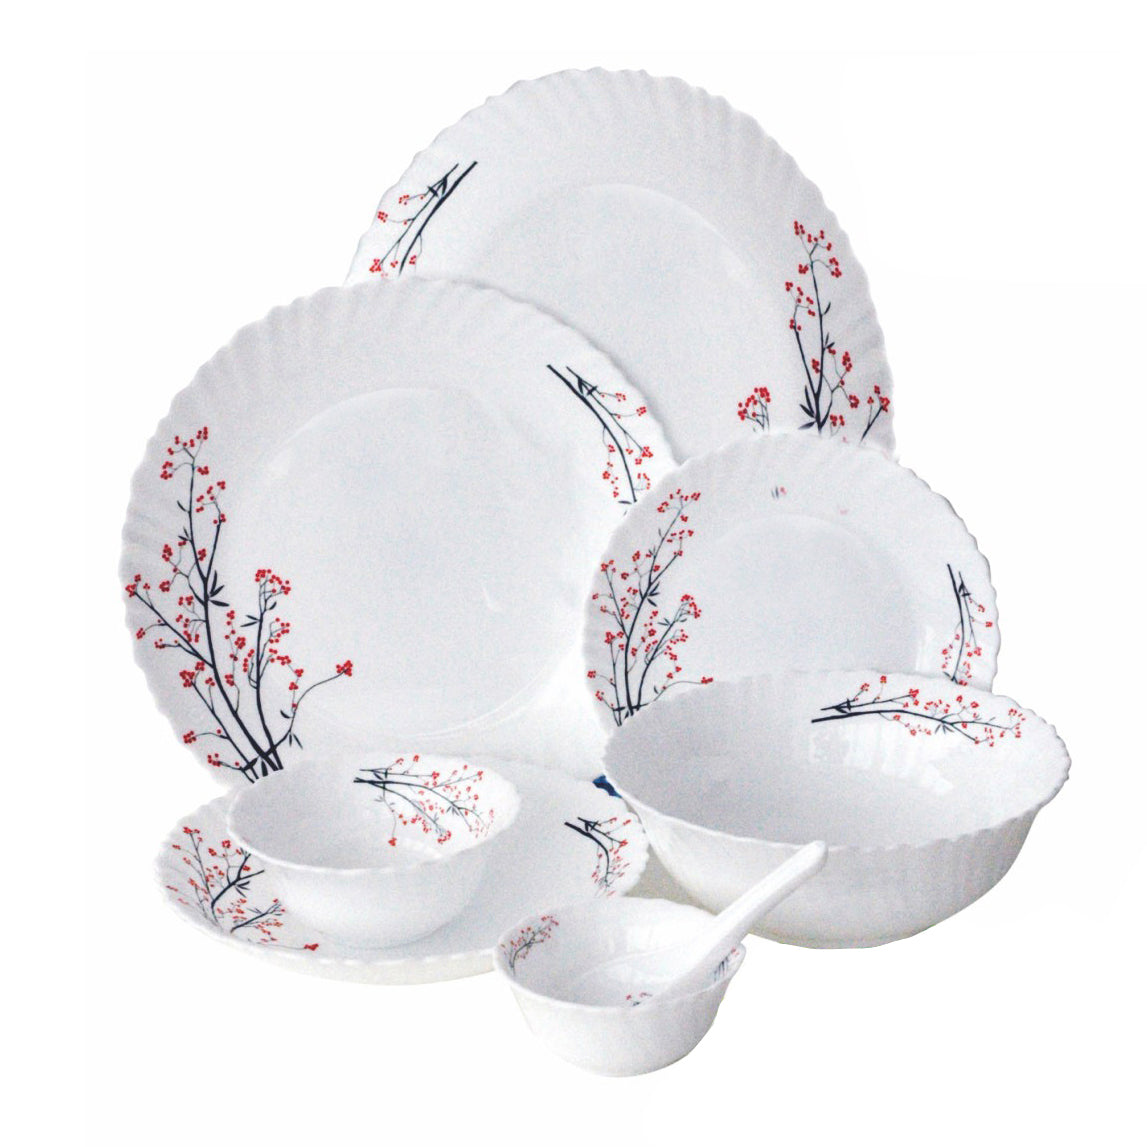 Royalford RF5037 - 40Pcs Opal Glassware Dinner Set - Floral Design Plates, Bowls, Spoons | Comfortable Handling | Perfect for family everyday use, & family get- together, restaurant, banquet & More (White)